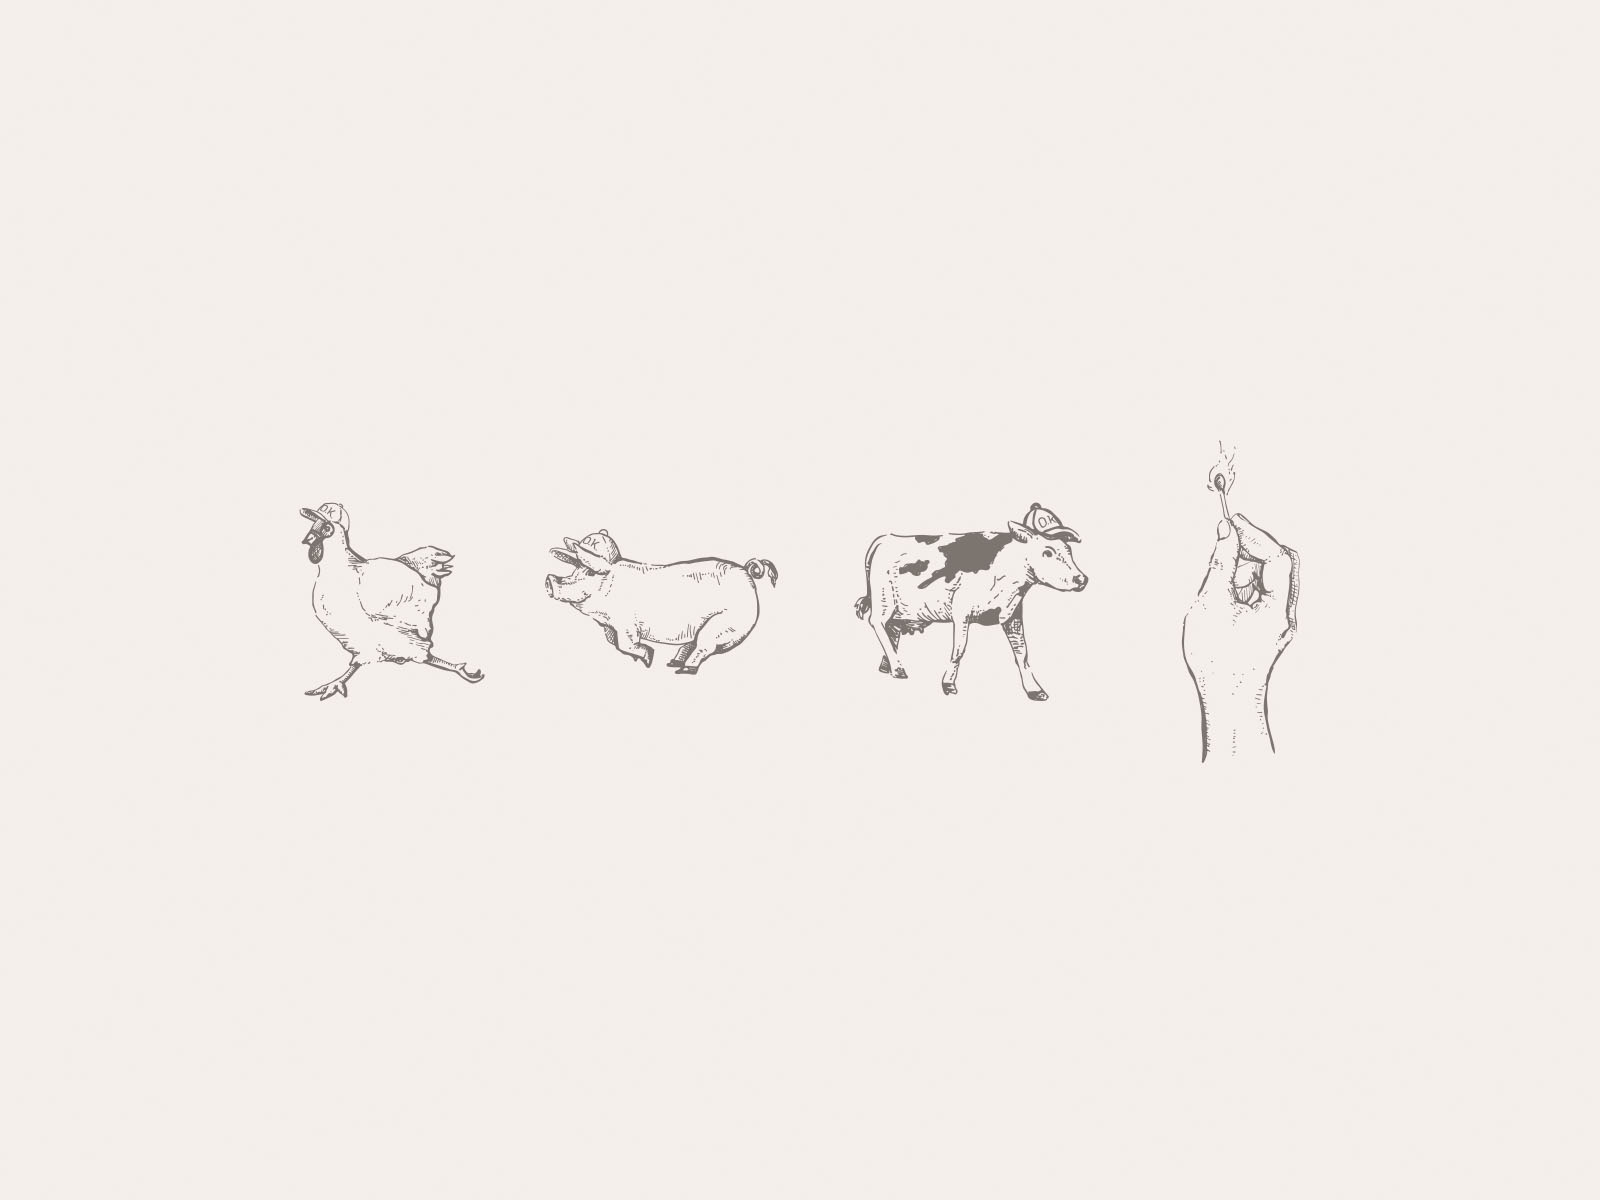 """Custom hand drawn illustrations by illustrator Russell Shaw for Oakblue Kitchen. Shows a chicken, pig, and cow in """"O.k."""" branded hats, and a lit match in a hand. Line art and cross hatching style."""